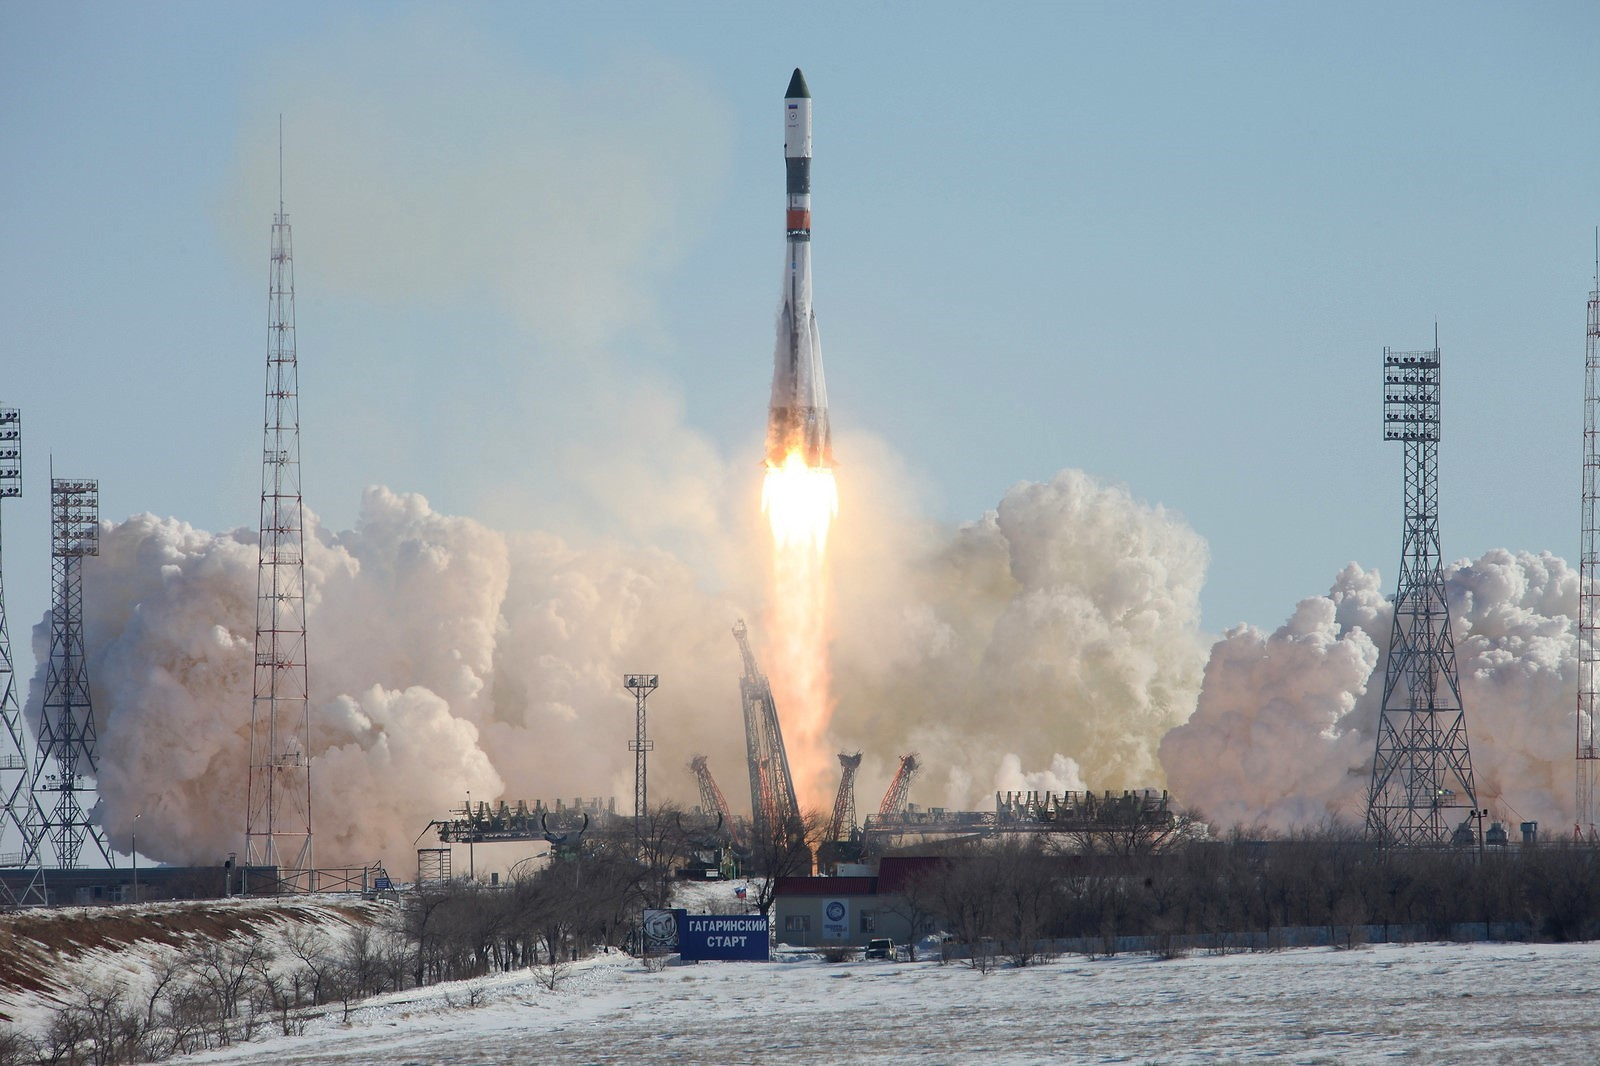 Soyuz-U / Progress MS-05 launch